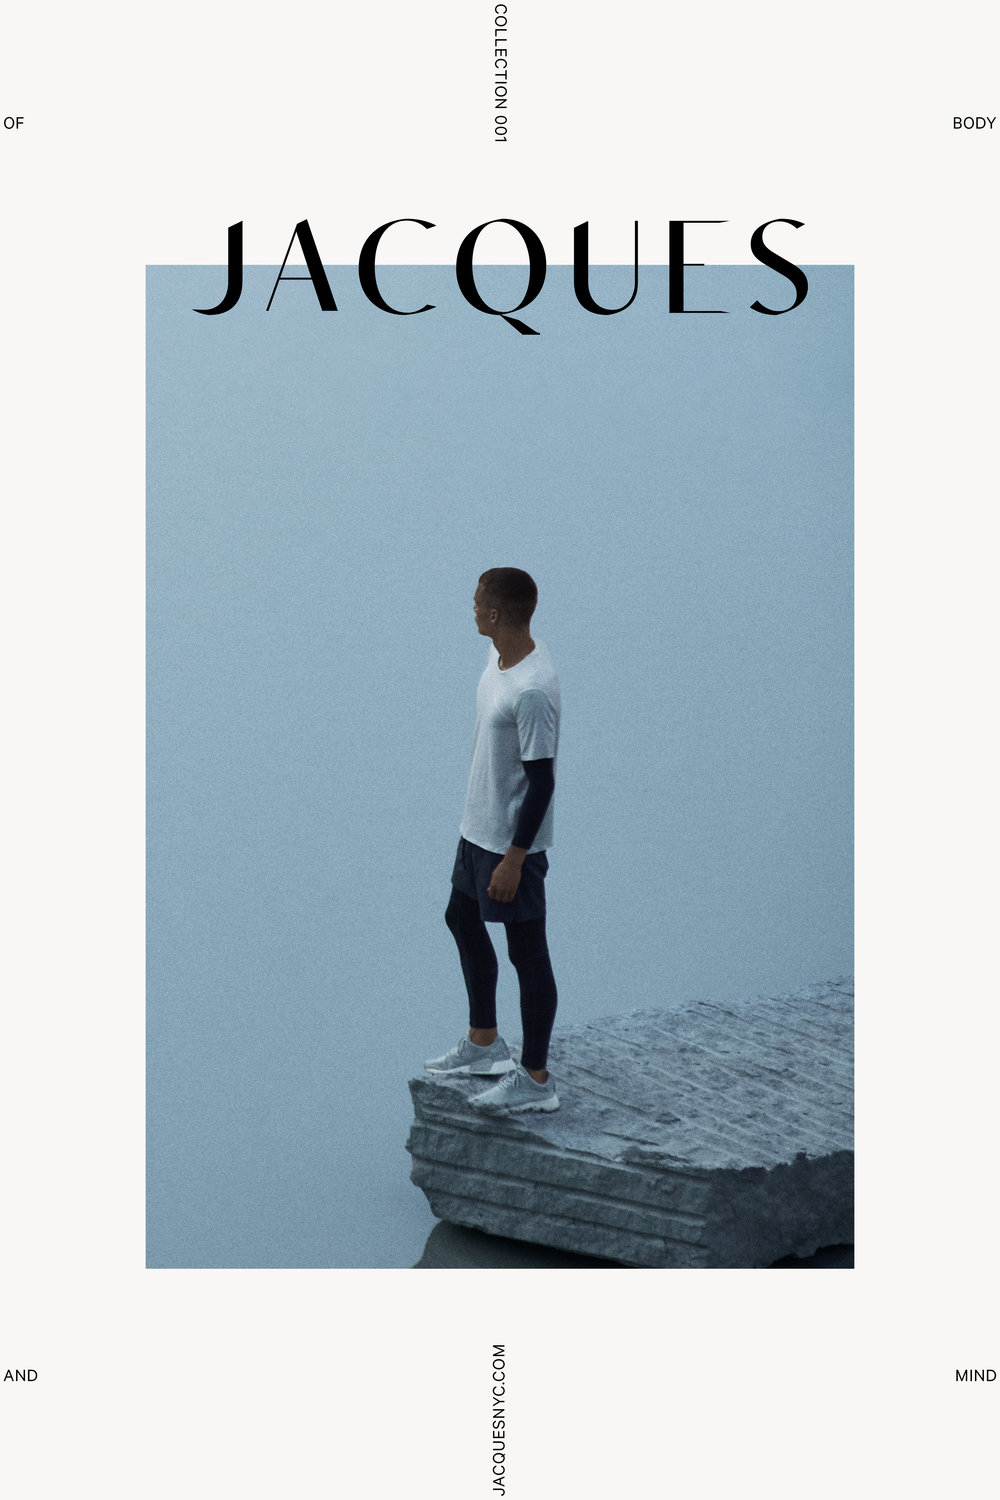 082517_Jacques_Posters_T&T&T3.jpg